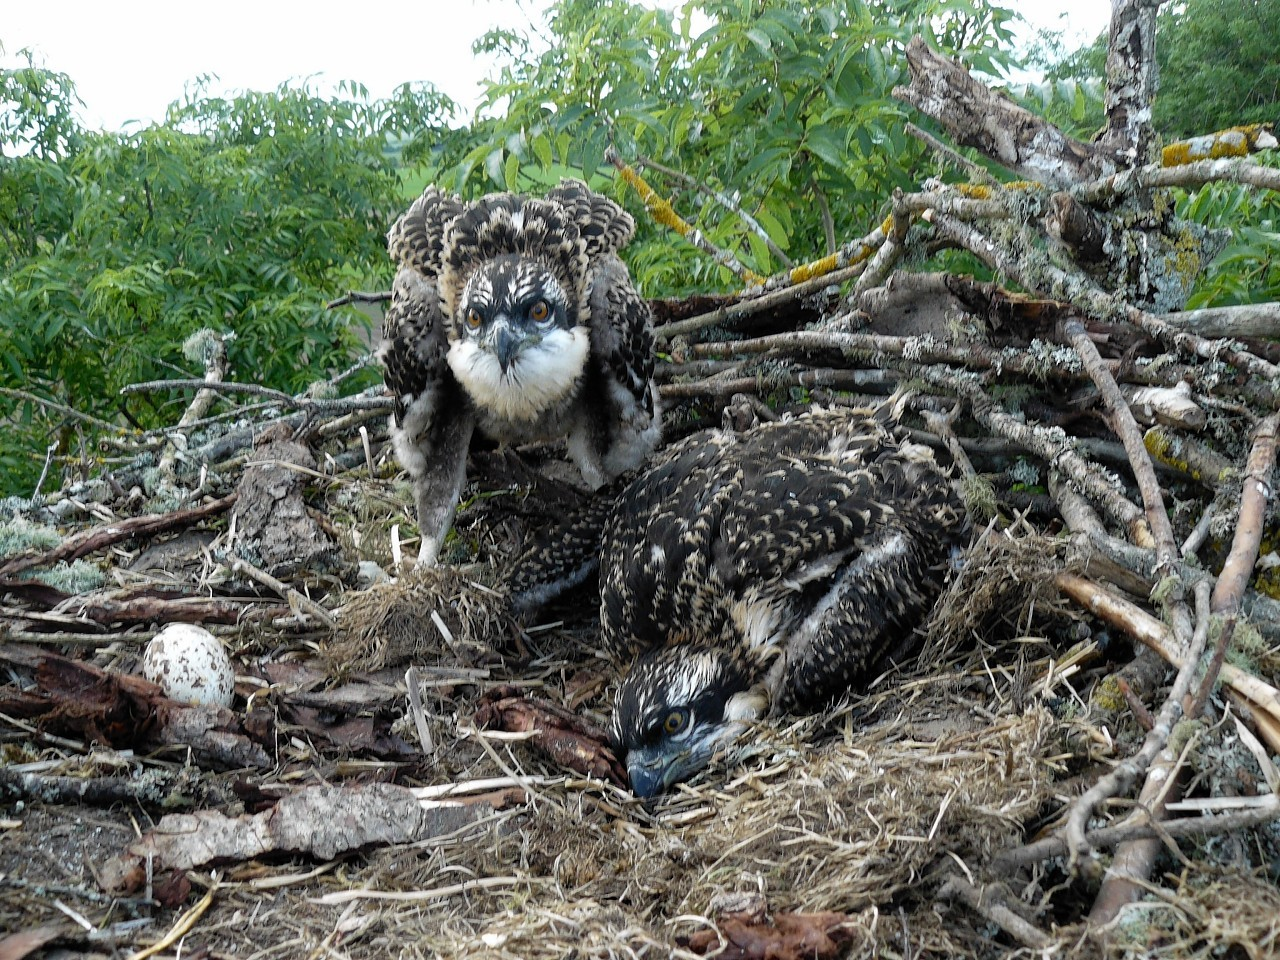 The ospreys at Balnagown Estate